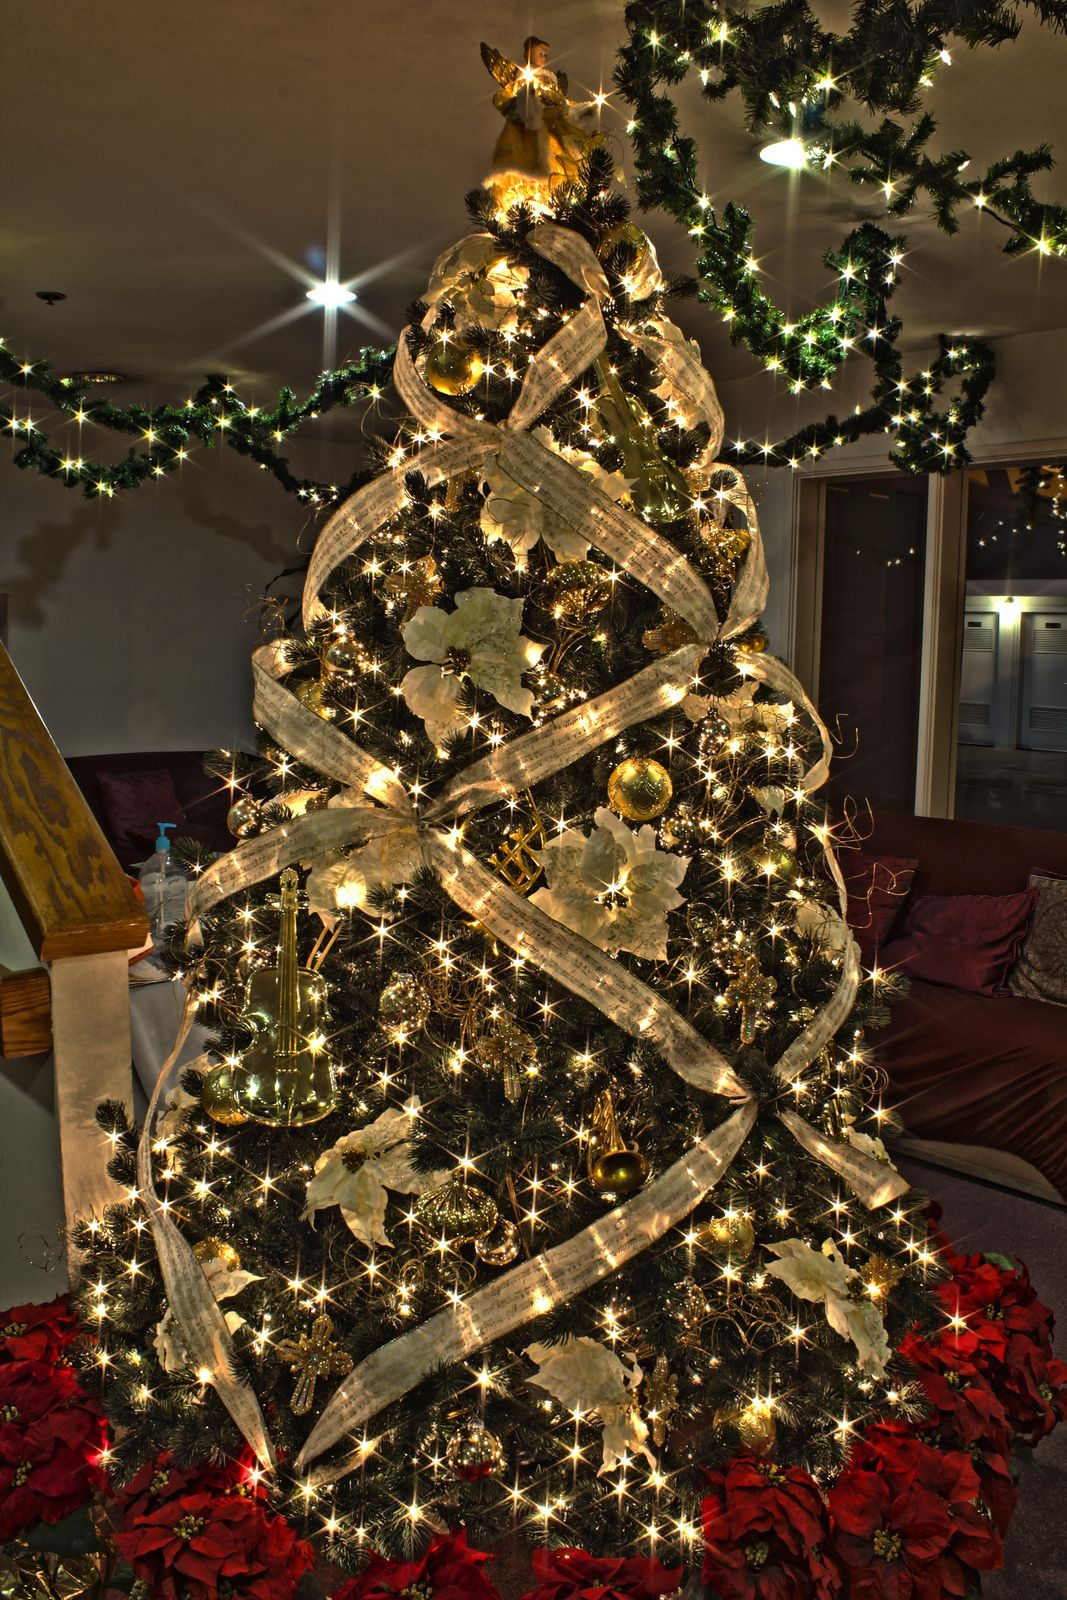 Gold Music Themed Christmas Tree Holidaze Pinterest Navidad - Pinos-de-navidad-decorados